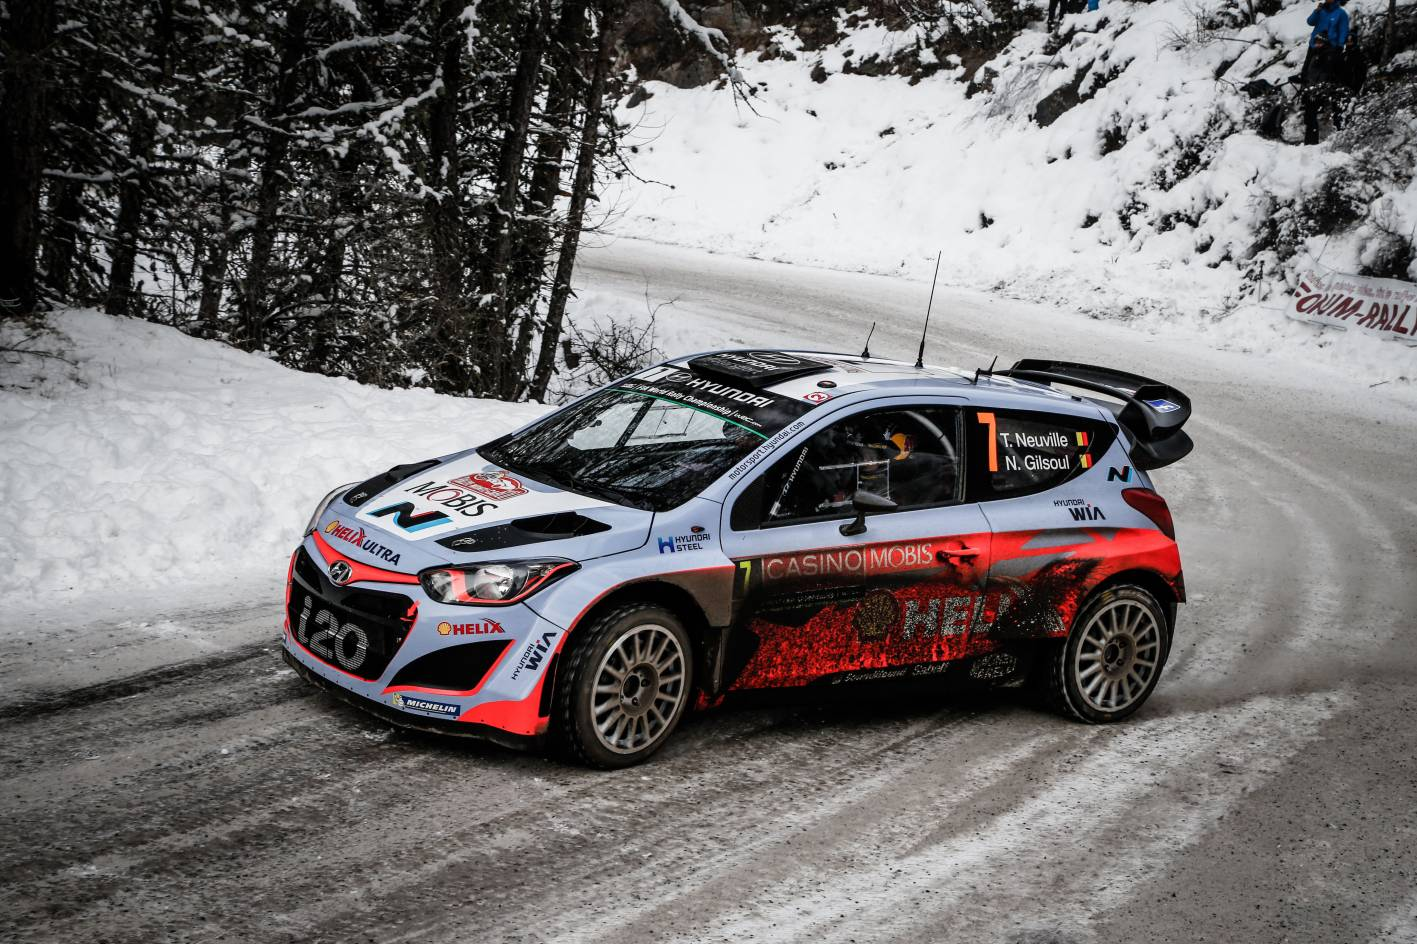 hyundai cars news i20 wrc debuts at rallye monte carlo. Black Bedroom Furniture Sets. Home Design Ideas